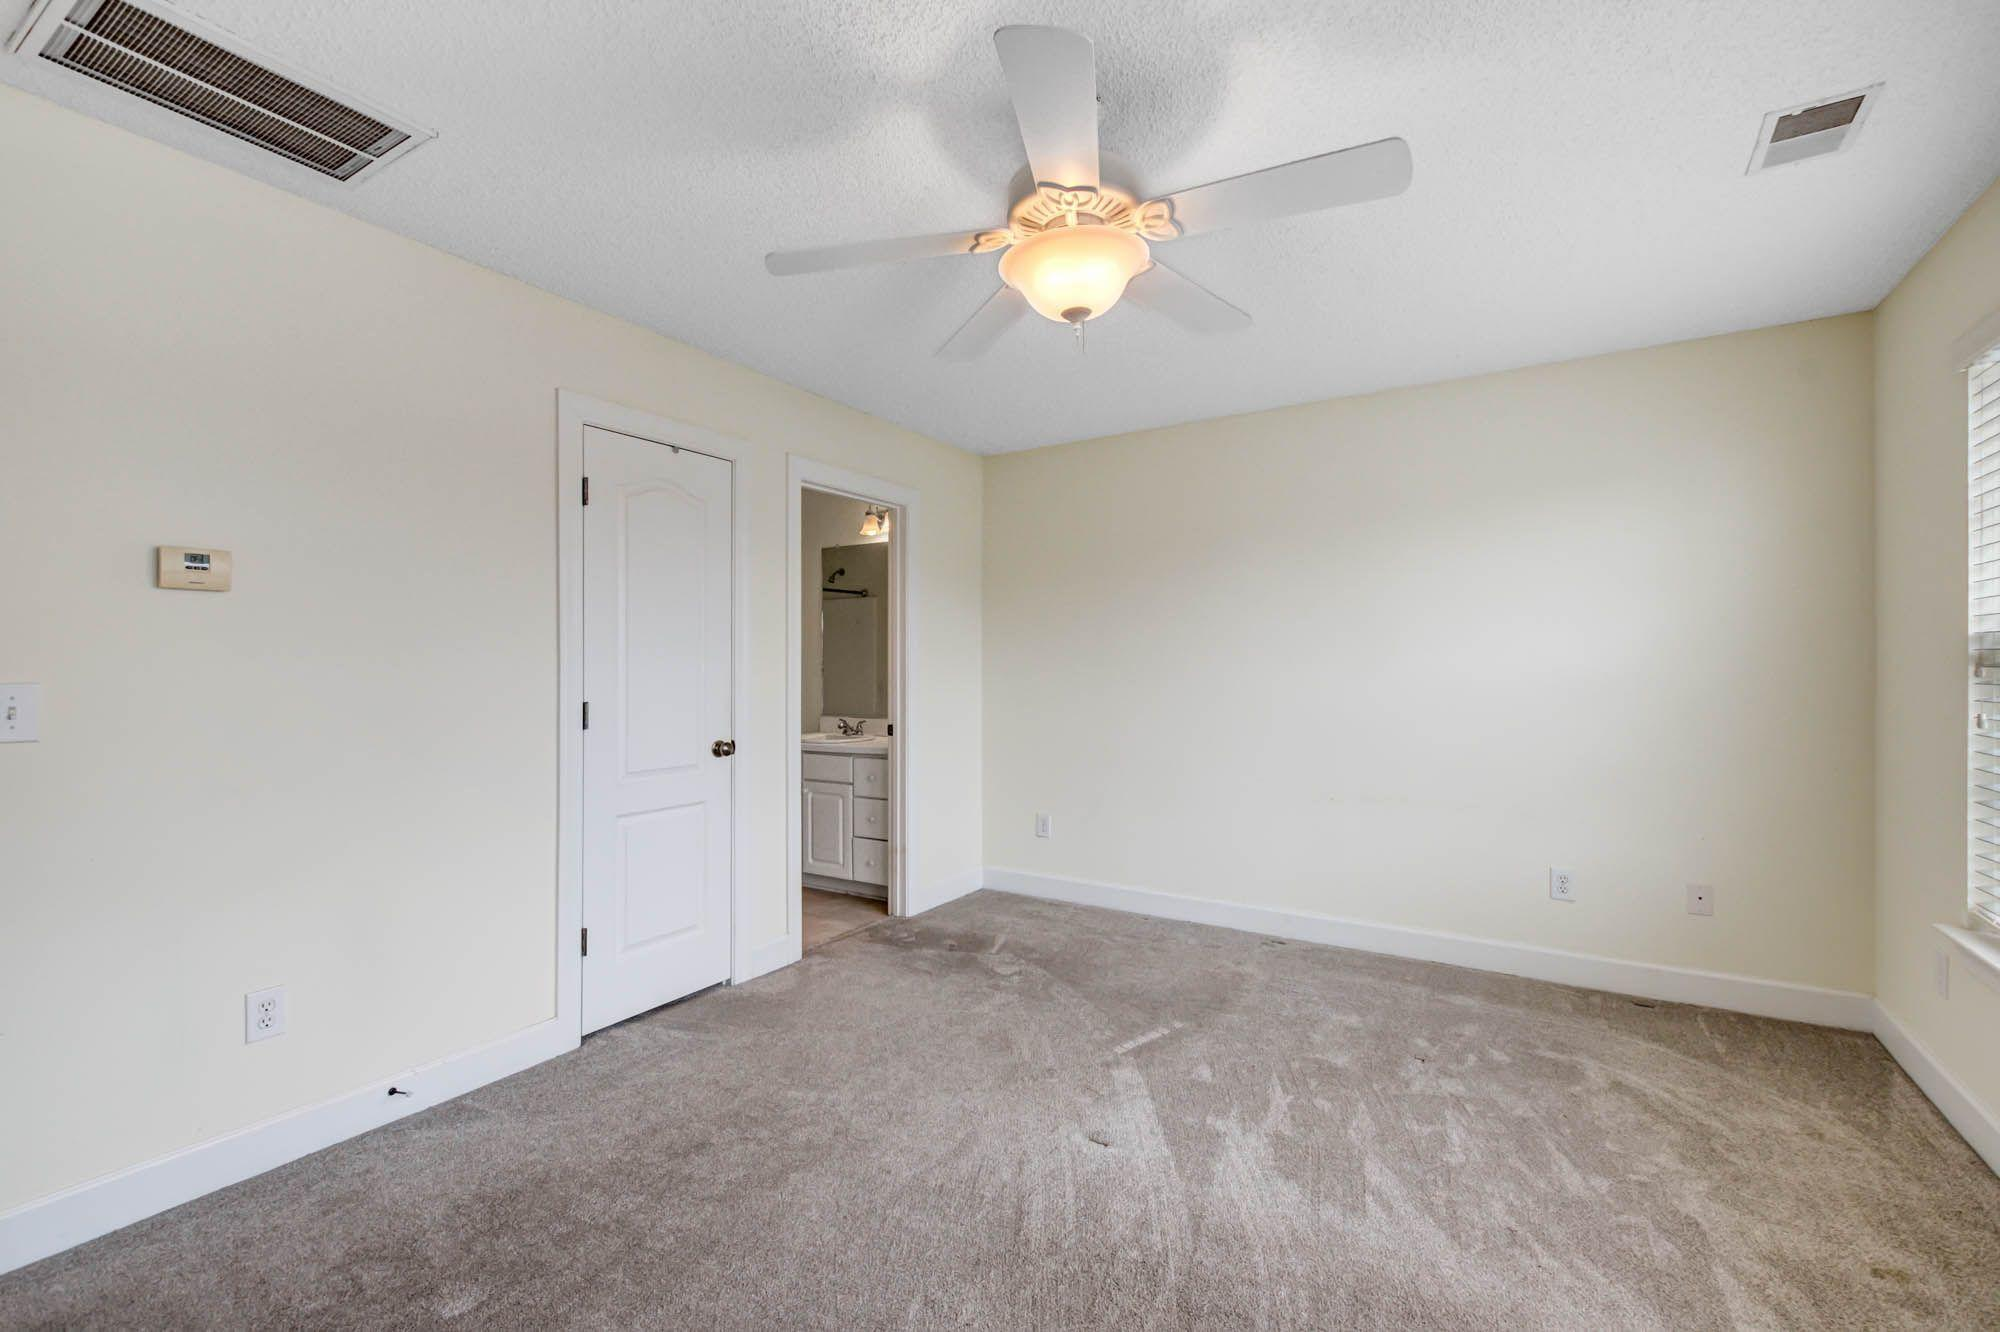 Whitney Lake Condos For Sale - 2926 Sugarberry, Johns Island, SC - 0